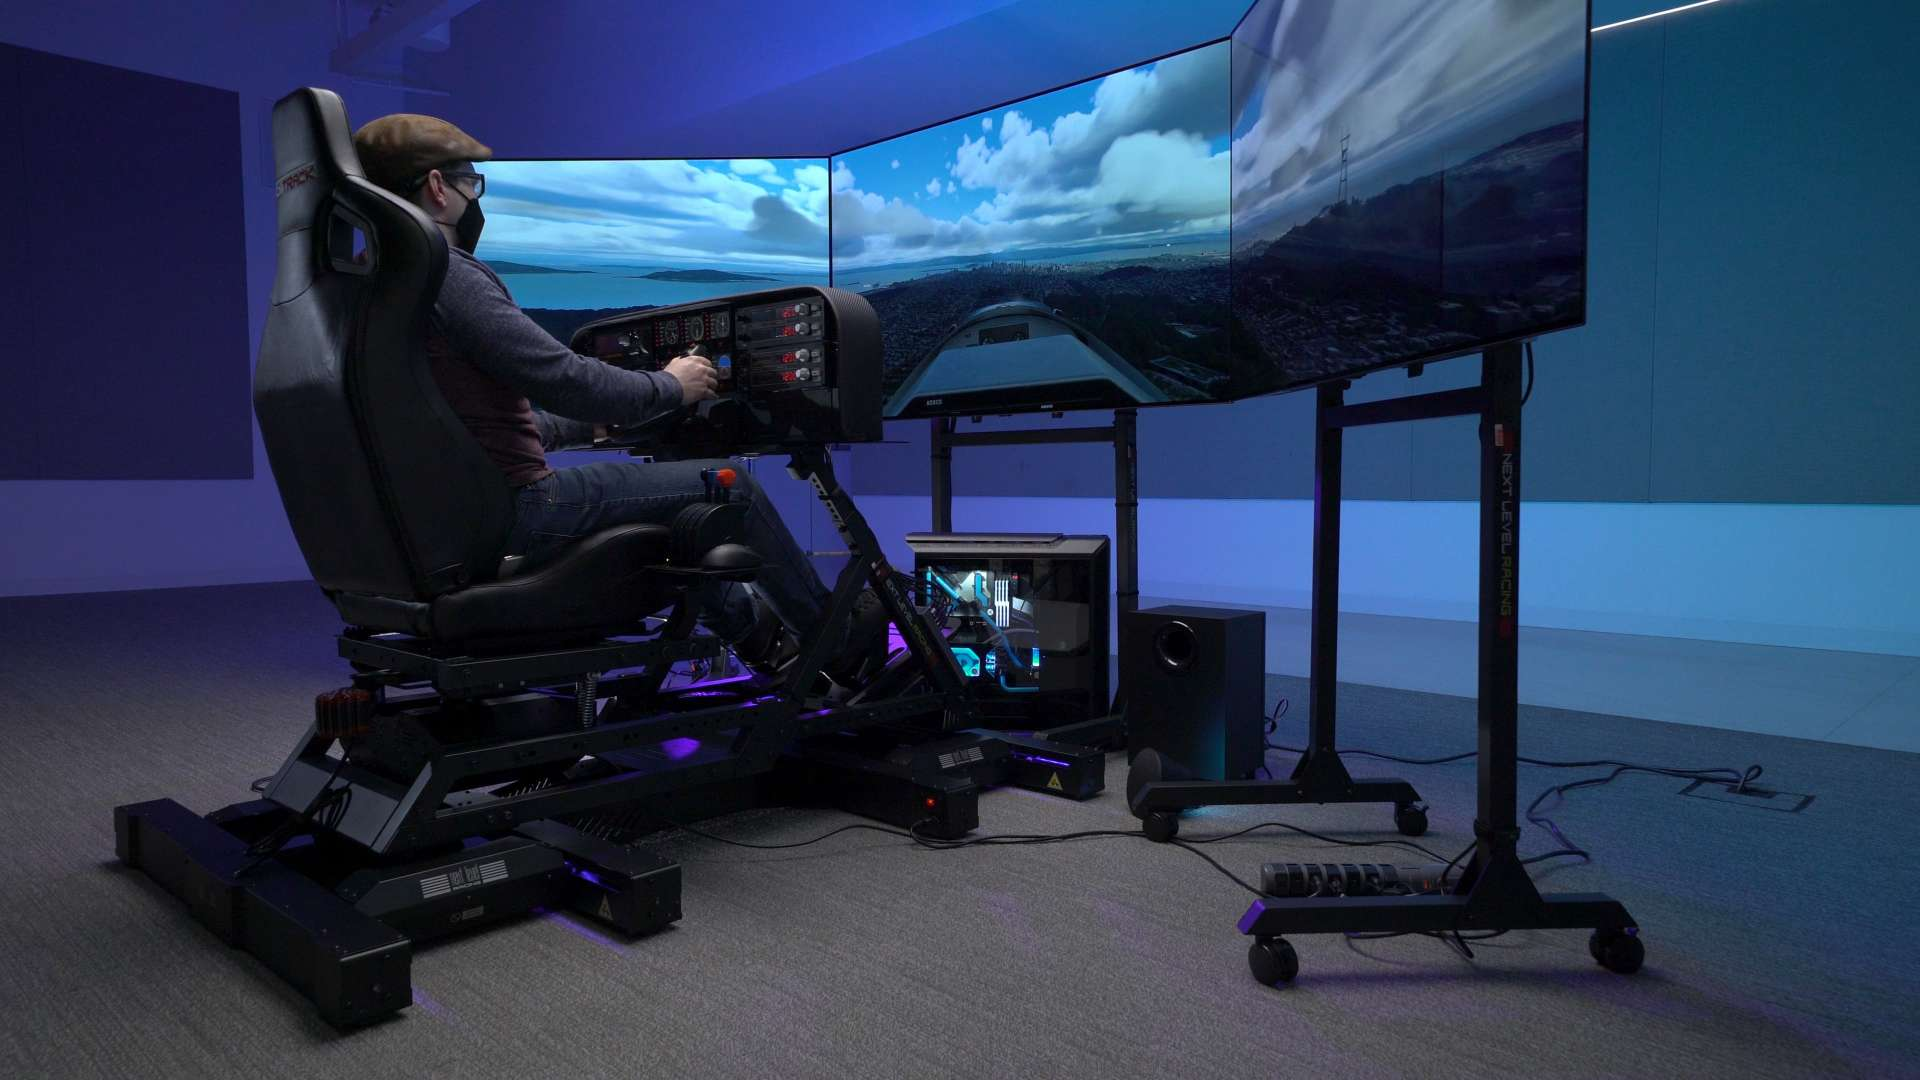 This RTX 3080-powered Microsoft Flight Simulator rig is the ultimate sim setup